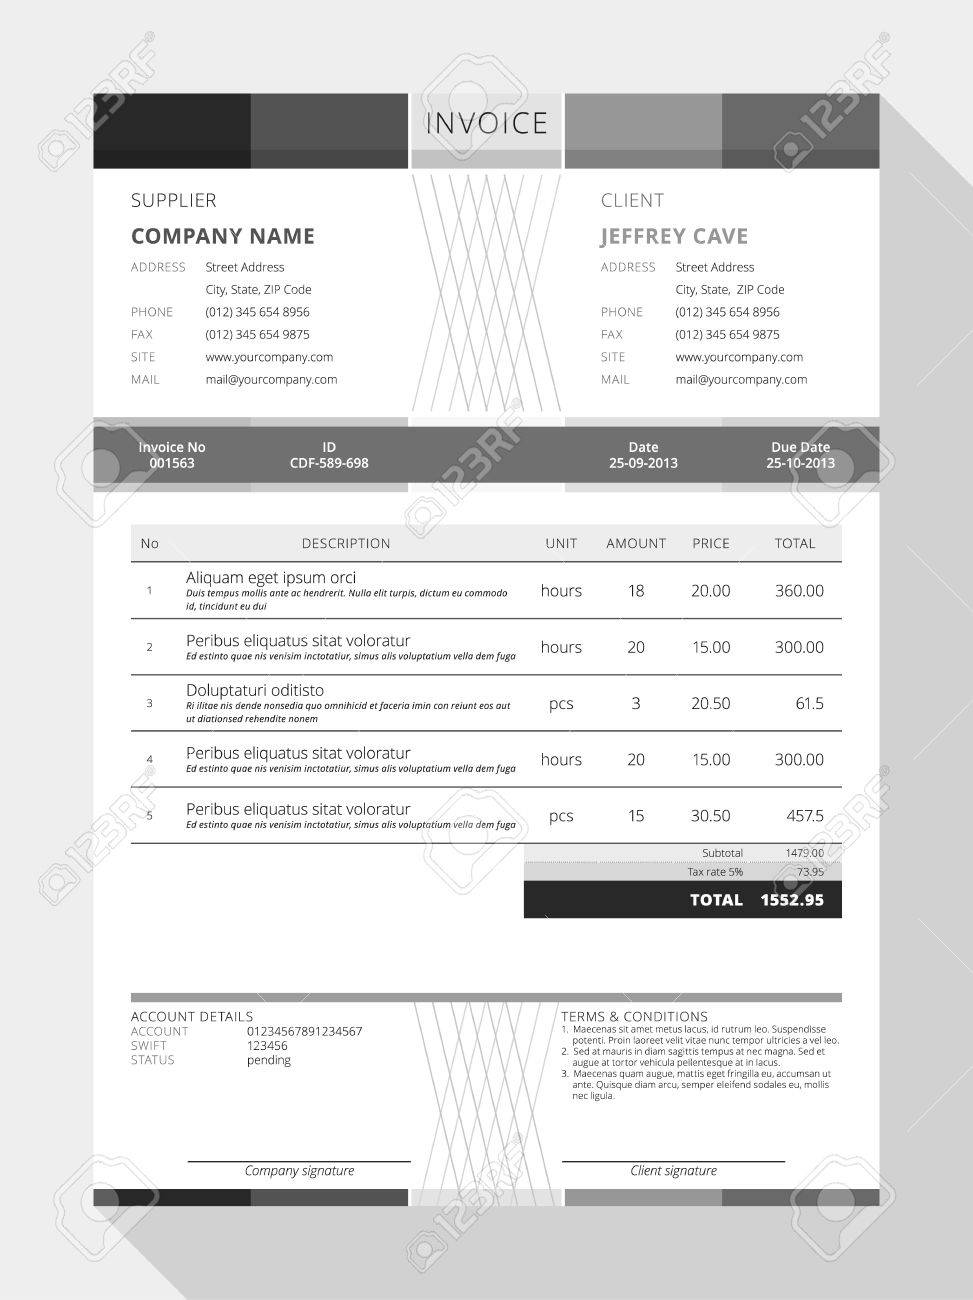 Ebitus  Nice Design An Invoice  Professional Graphic Design Invoice  With Great Vector Customizable Invoice Form Template Design Vector   Design An Invoice With Comely Excel Invoice Template Also Google Docs Invoice Template In Addition Invoice Template Pdf And How To Make A Paypal Invoice As Well As Free Invoice Additionally Paypal Invoice Fee From Happytomco With Ebitus  Great Design An Invoice  Professional Graphic Design Invoice  With Comely Vector Customizable Invoice Form Template Design Vector   Design An Invoice And Nice Excel Invoice Template Also Google Docs Invoice Template In Addition Invoice Template Pdf From Happytomco